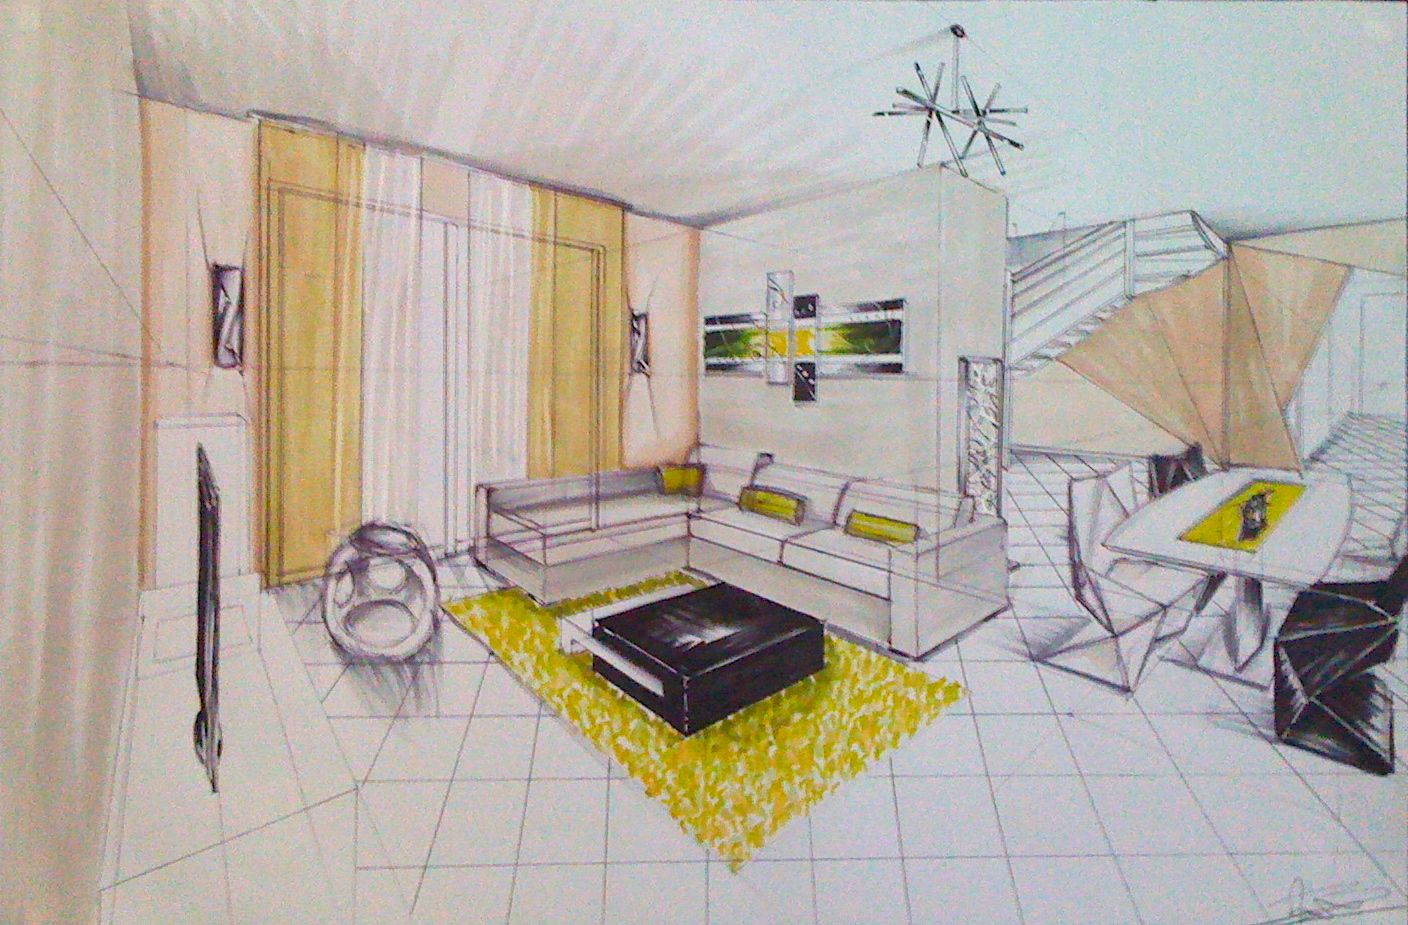 Dessins d 39 interieur de maisons en perspective anabelle for Dessin architecture interieur